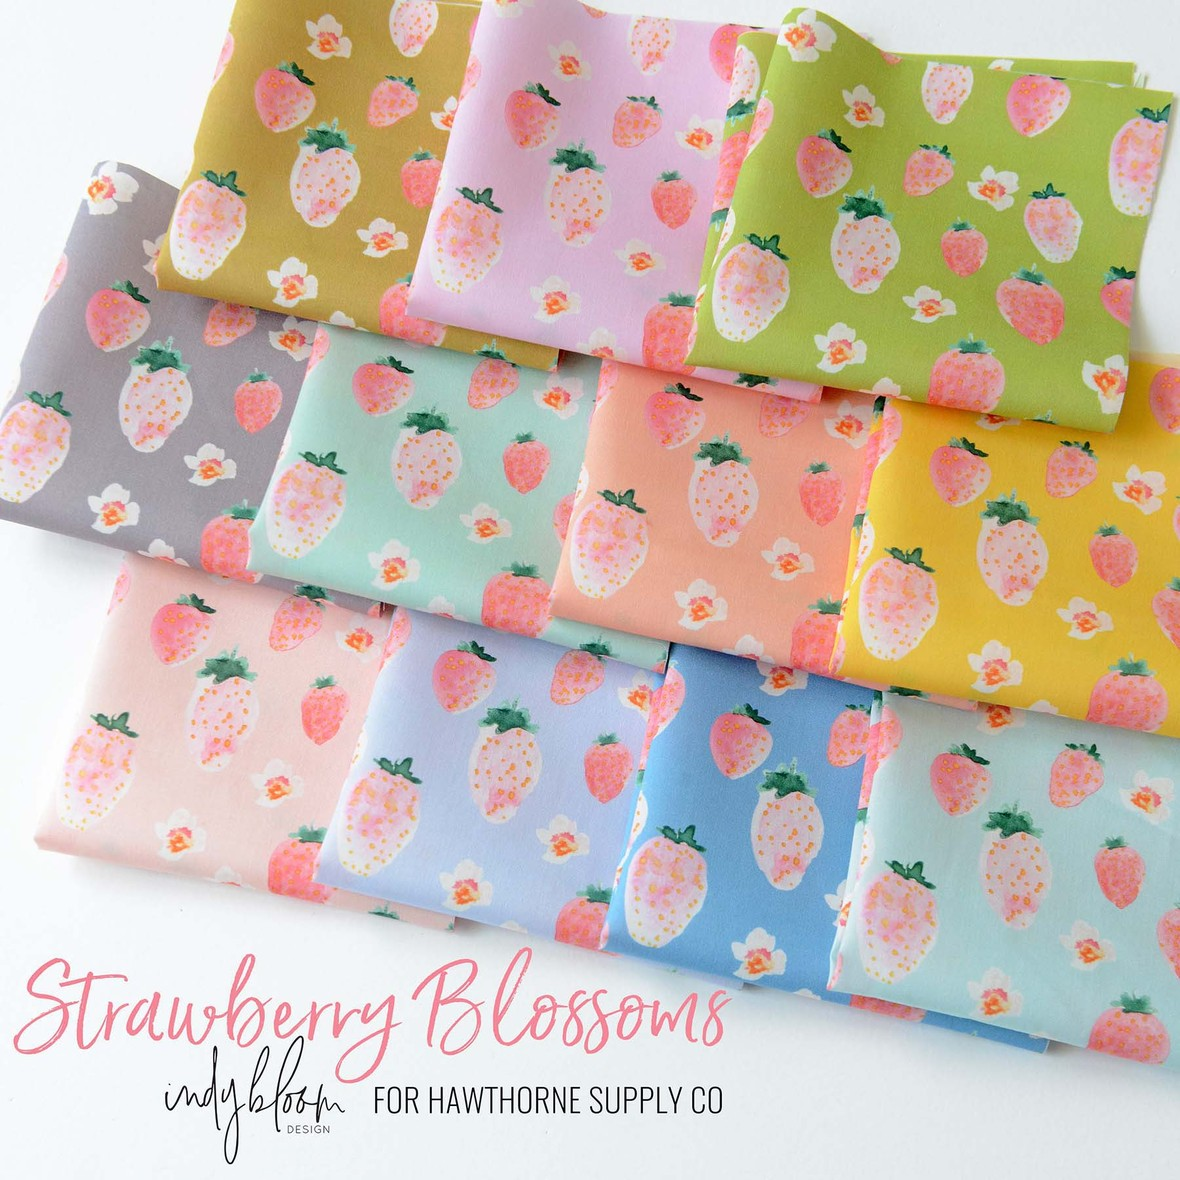 Strawberry Blossoms Fabric Poster Indy Bloom for Hawthorne Supply Co